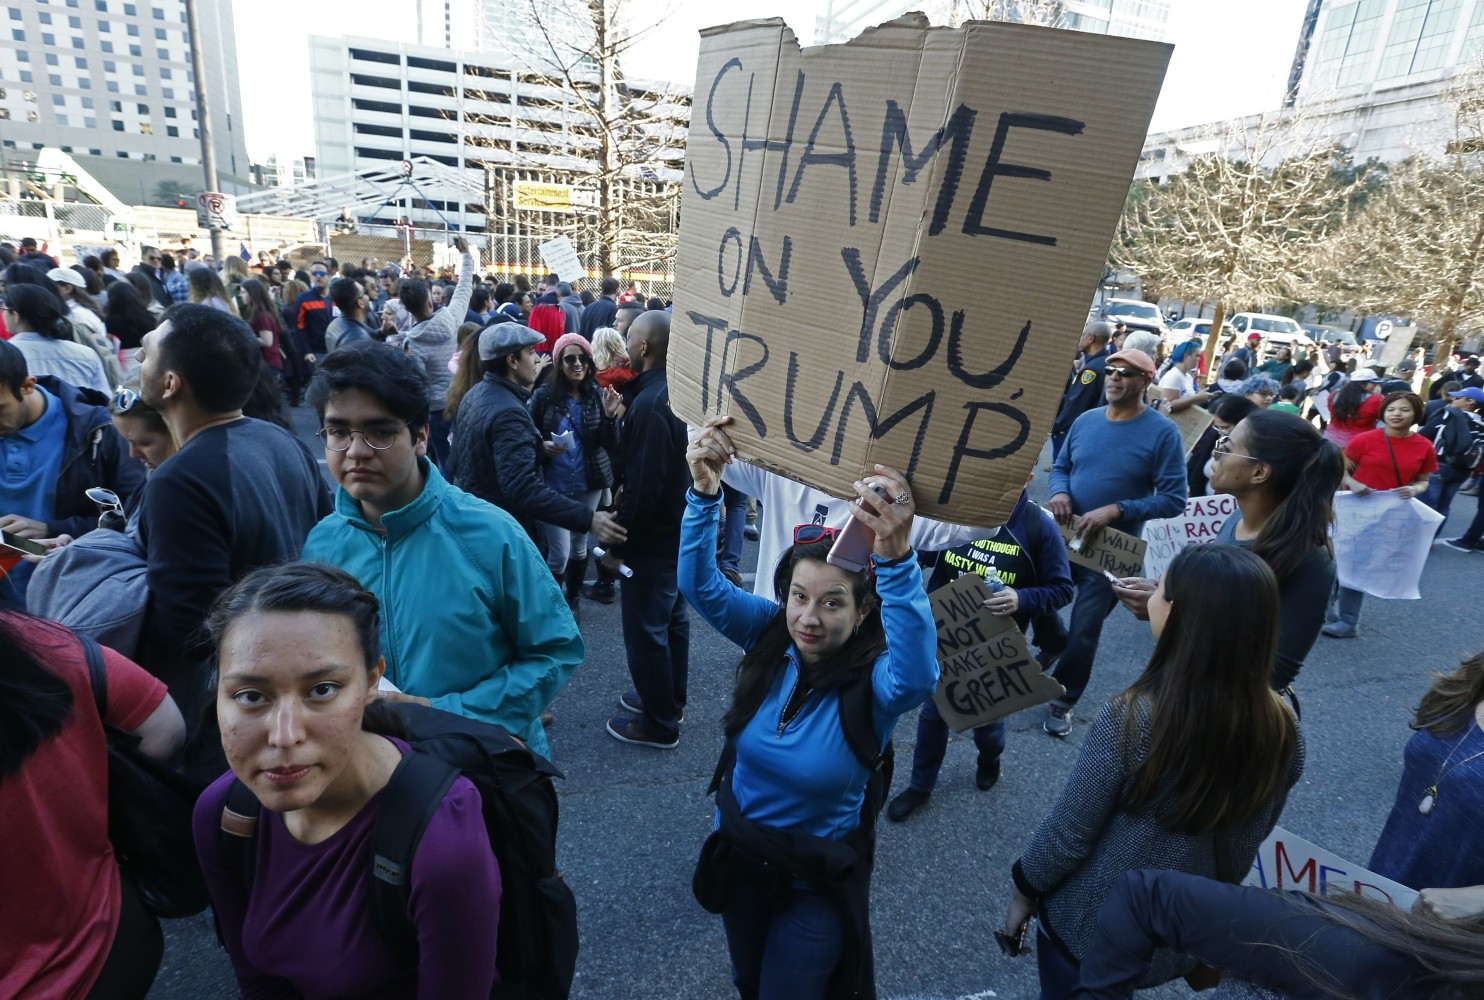 Protest News: Doctors And Scientists Denounce Trump's Immigration Order